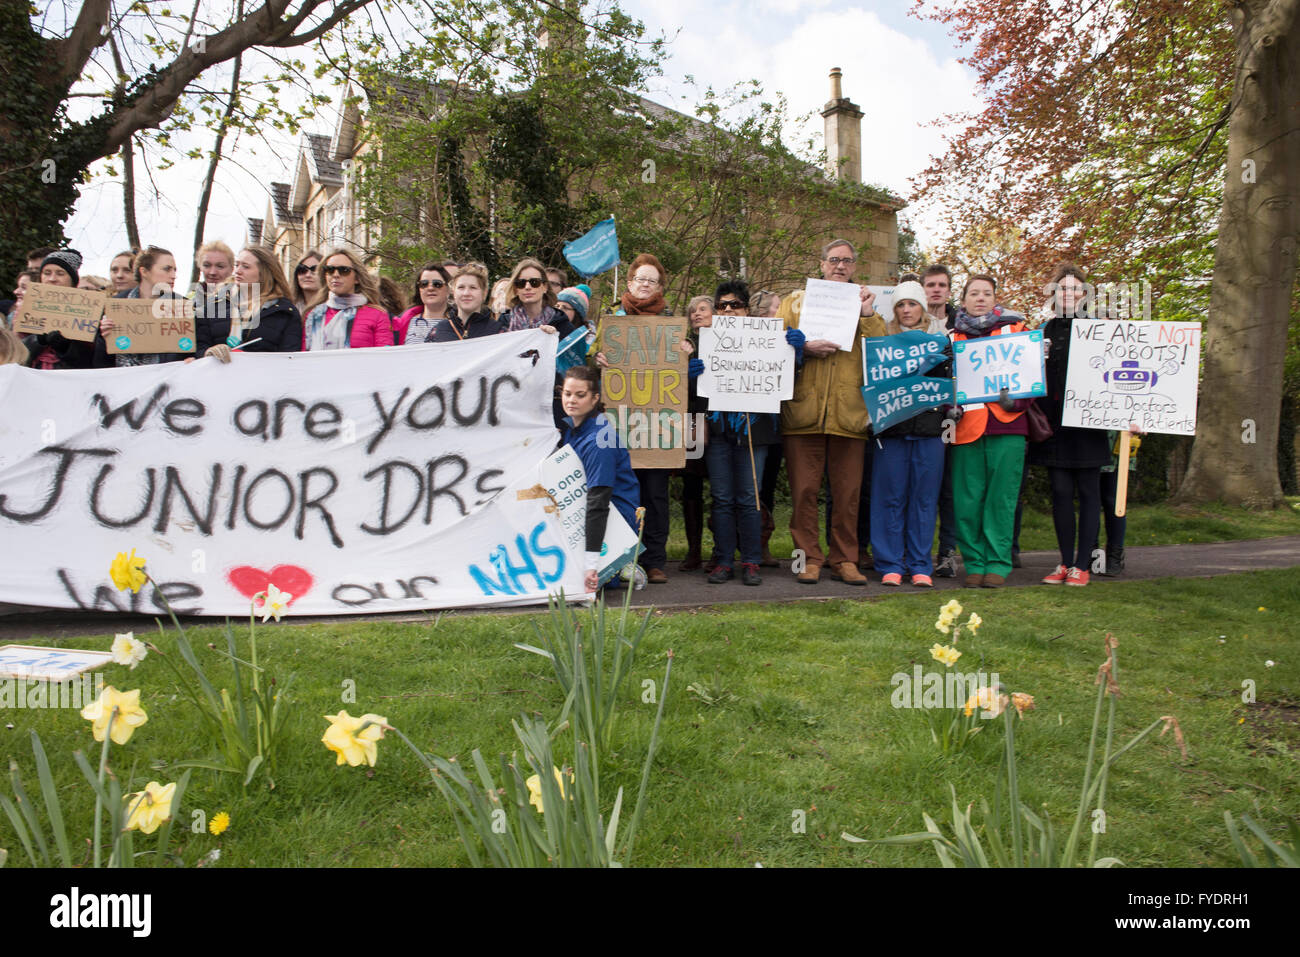 Bath, UK. 26th April, 2016. Bath, UK. 26th April, 2016. Junior doctors outside the Royal United Hospital in Bath. - Stock Image